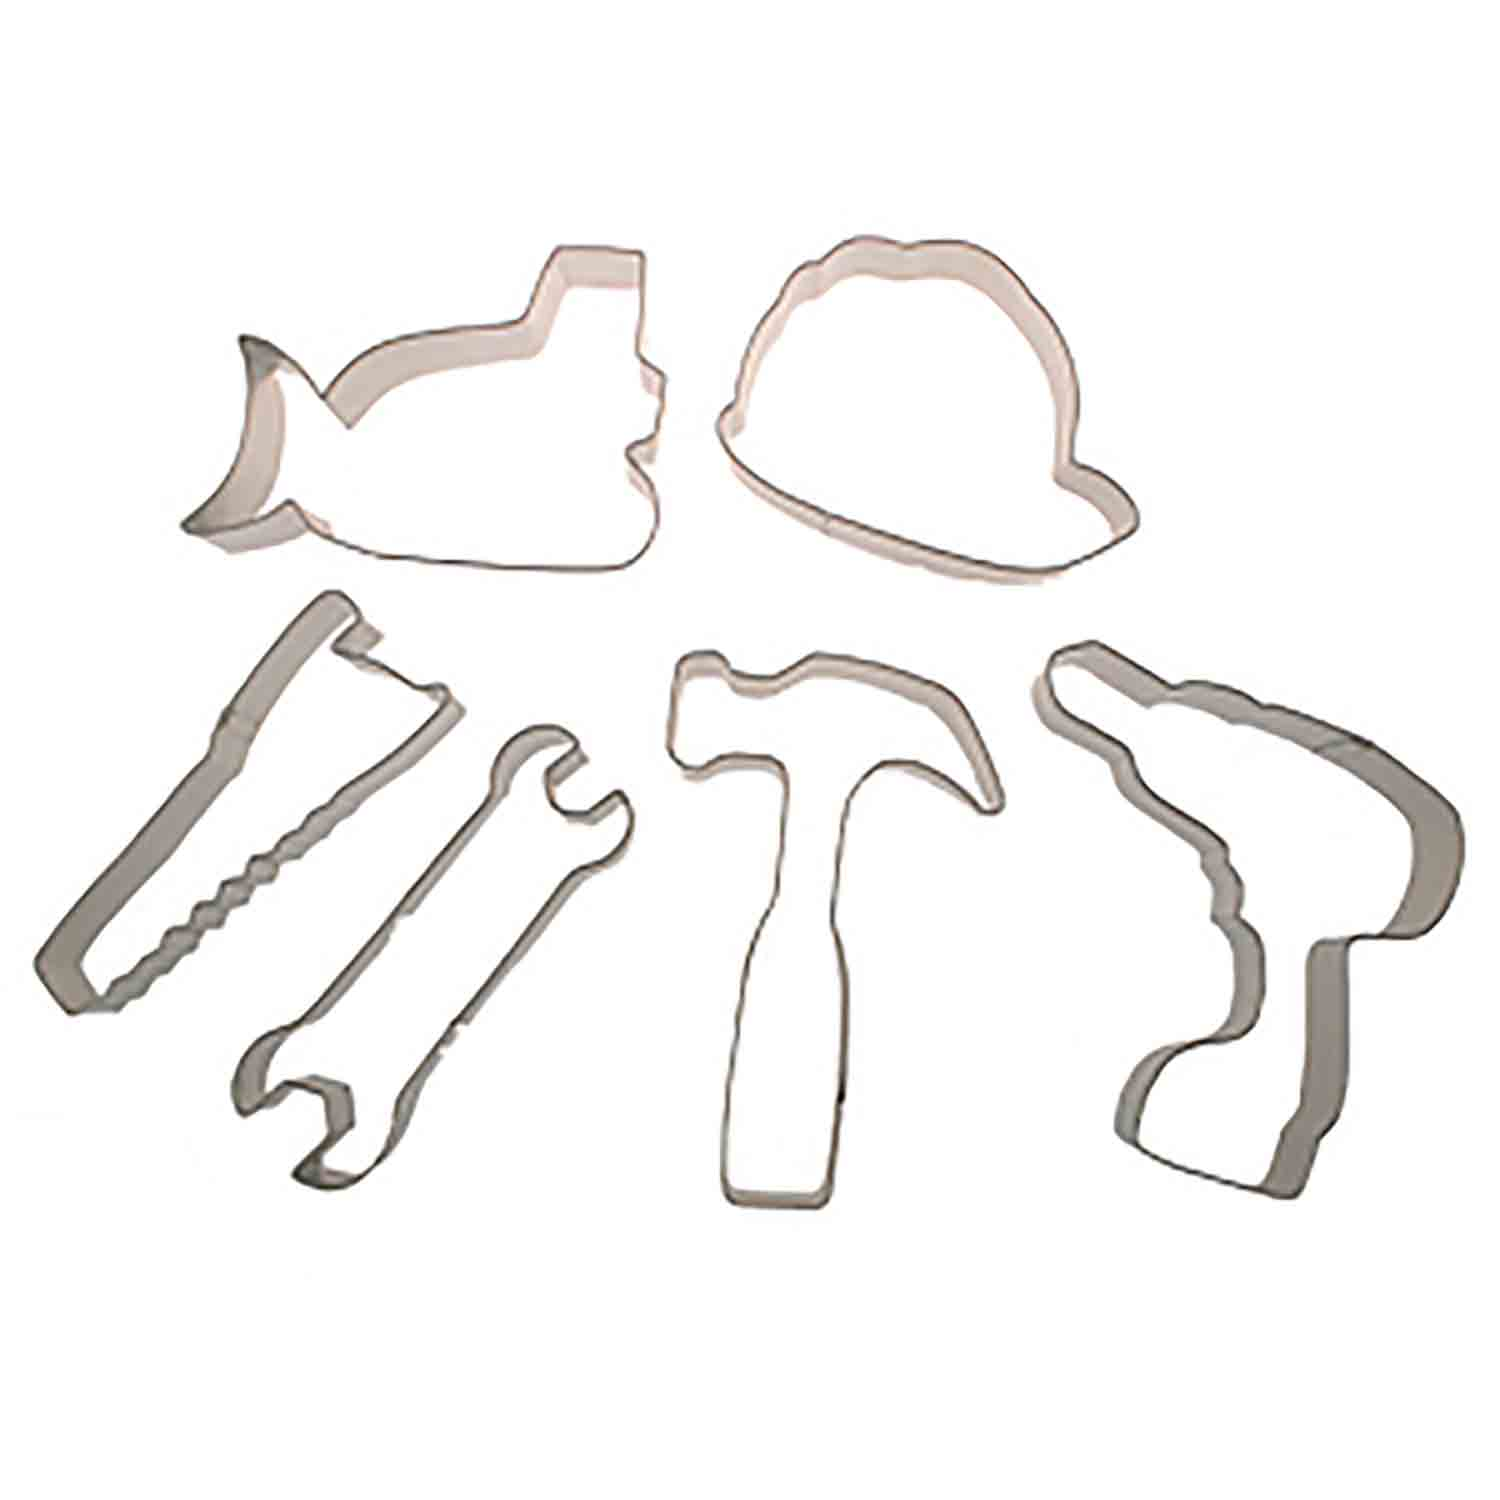 Construction Cookie Cutter Set